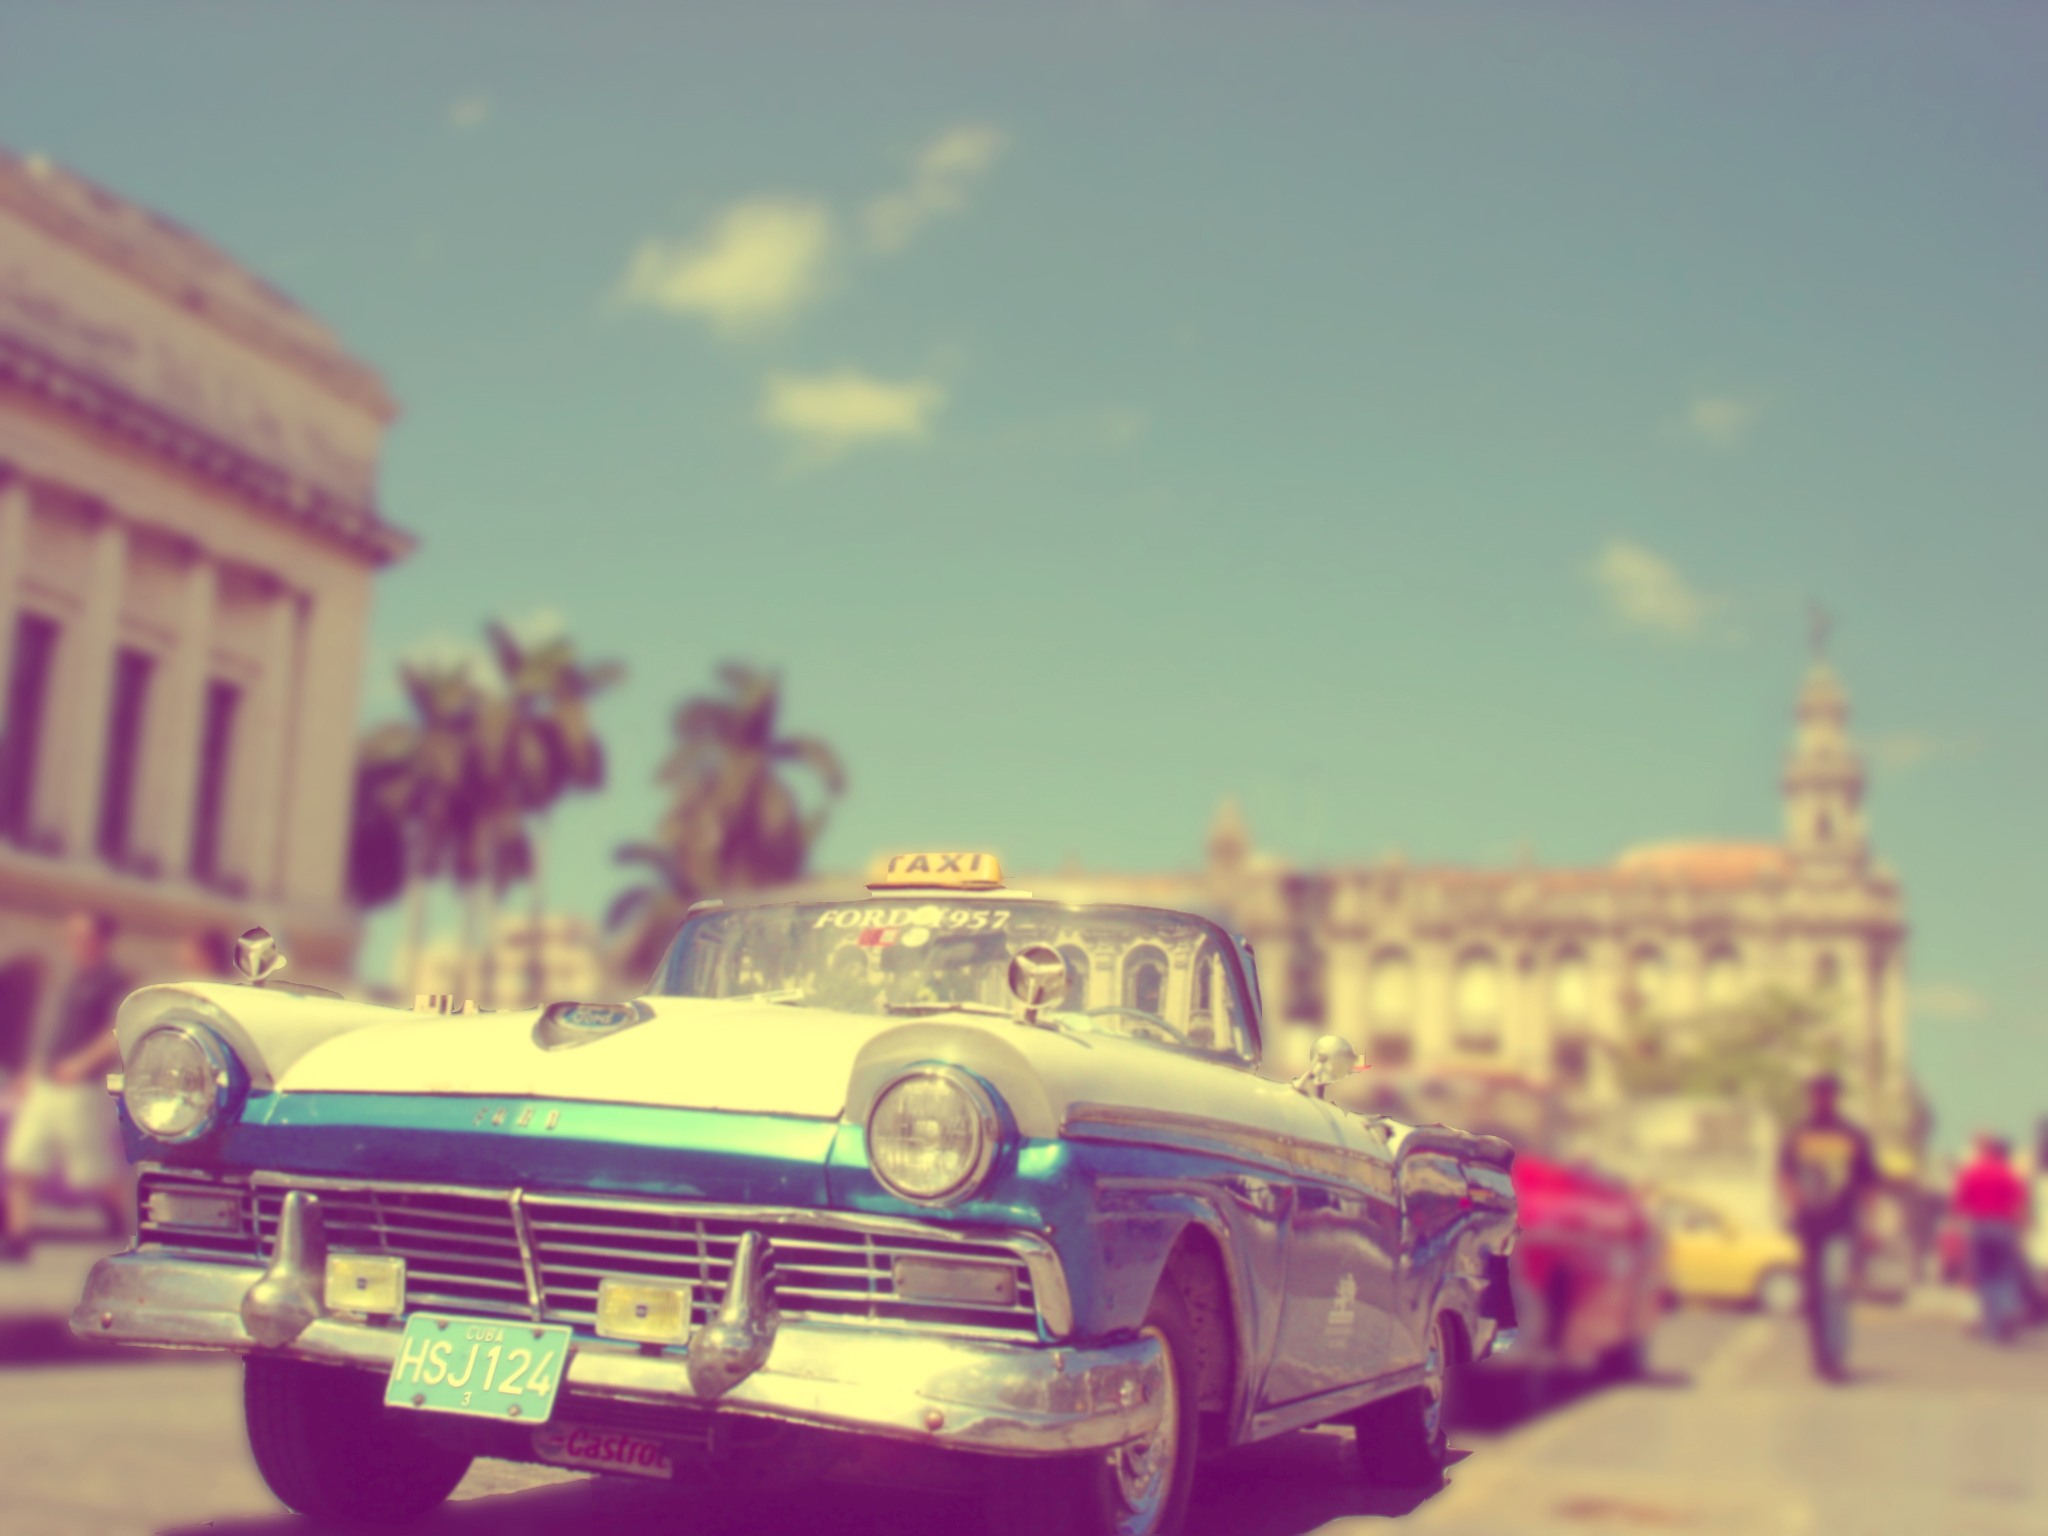 Beautiful Cuba Wallpaper | BsnSCB Gallery